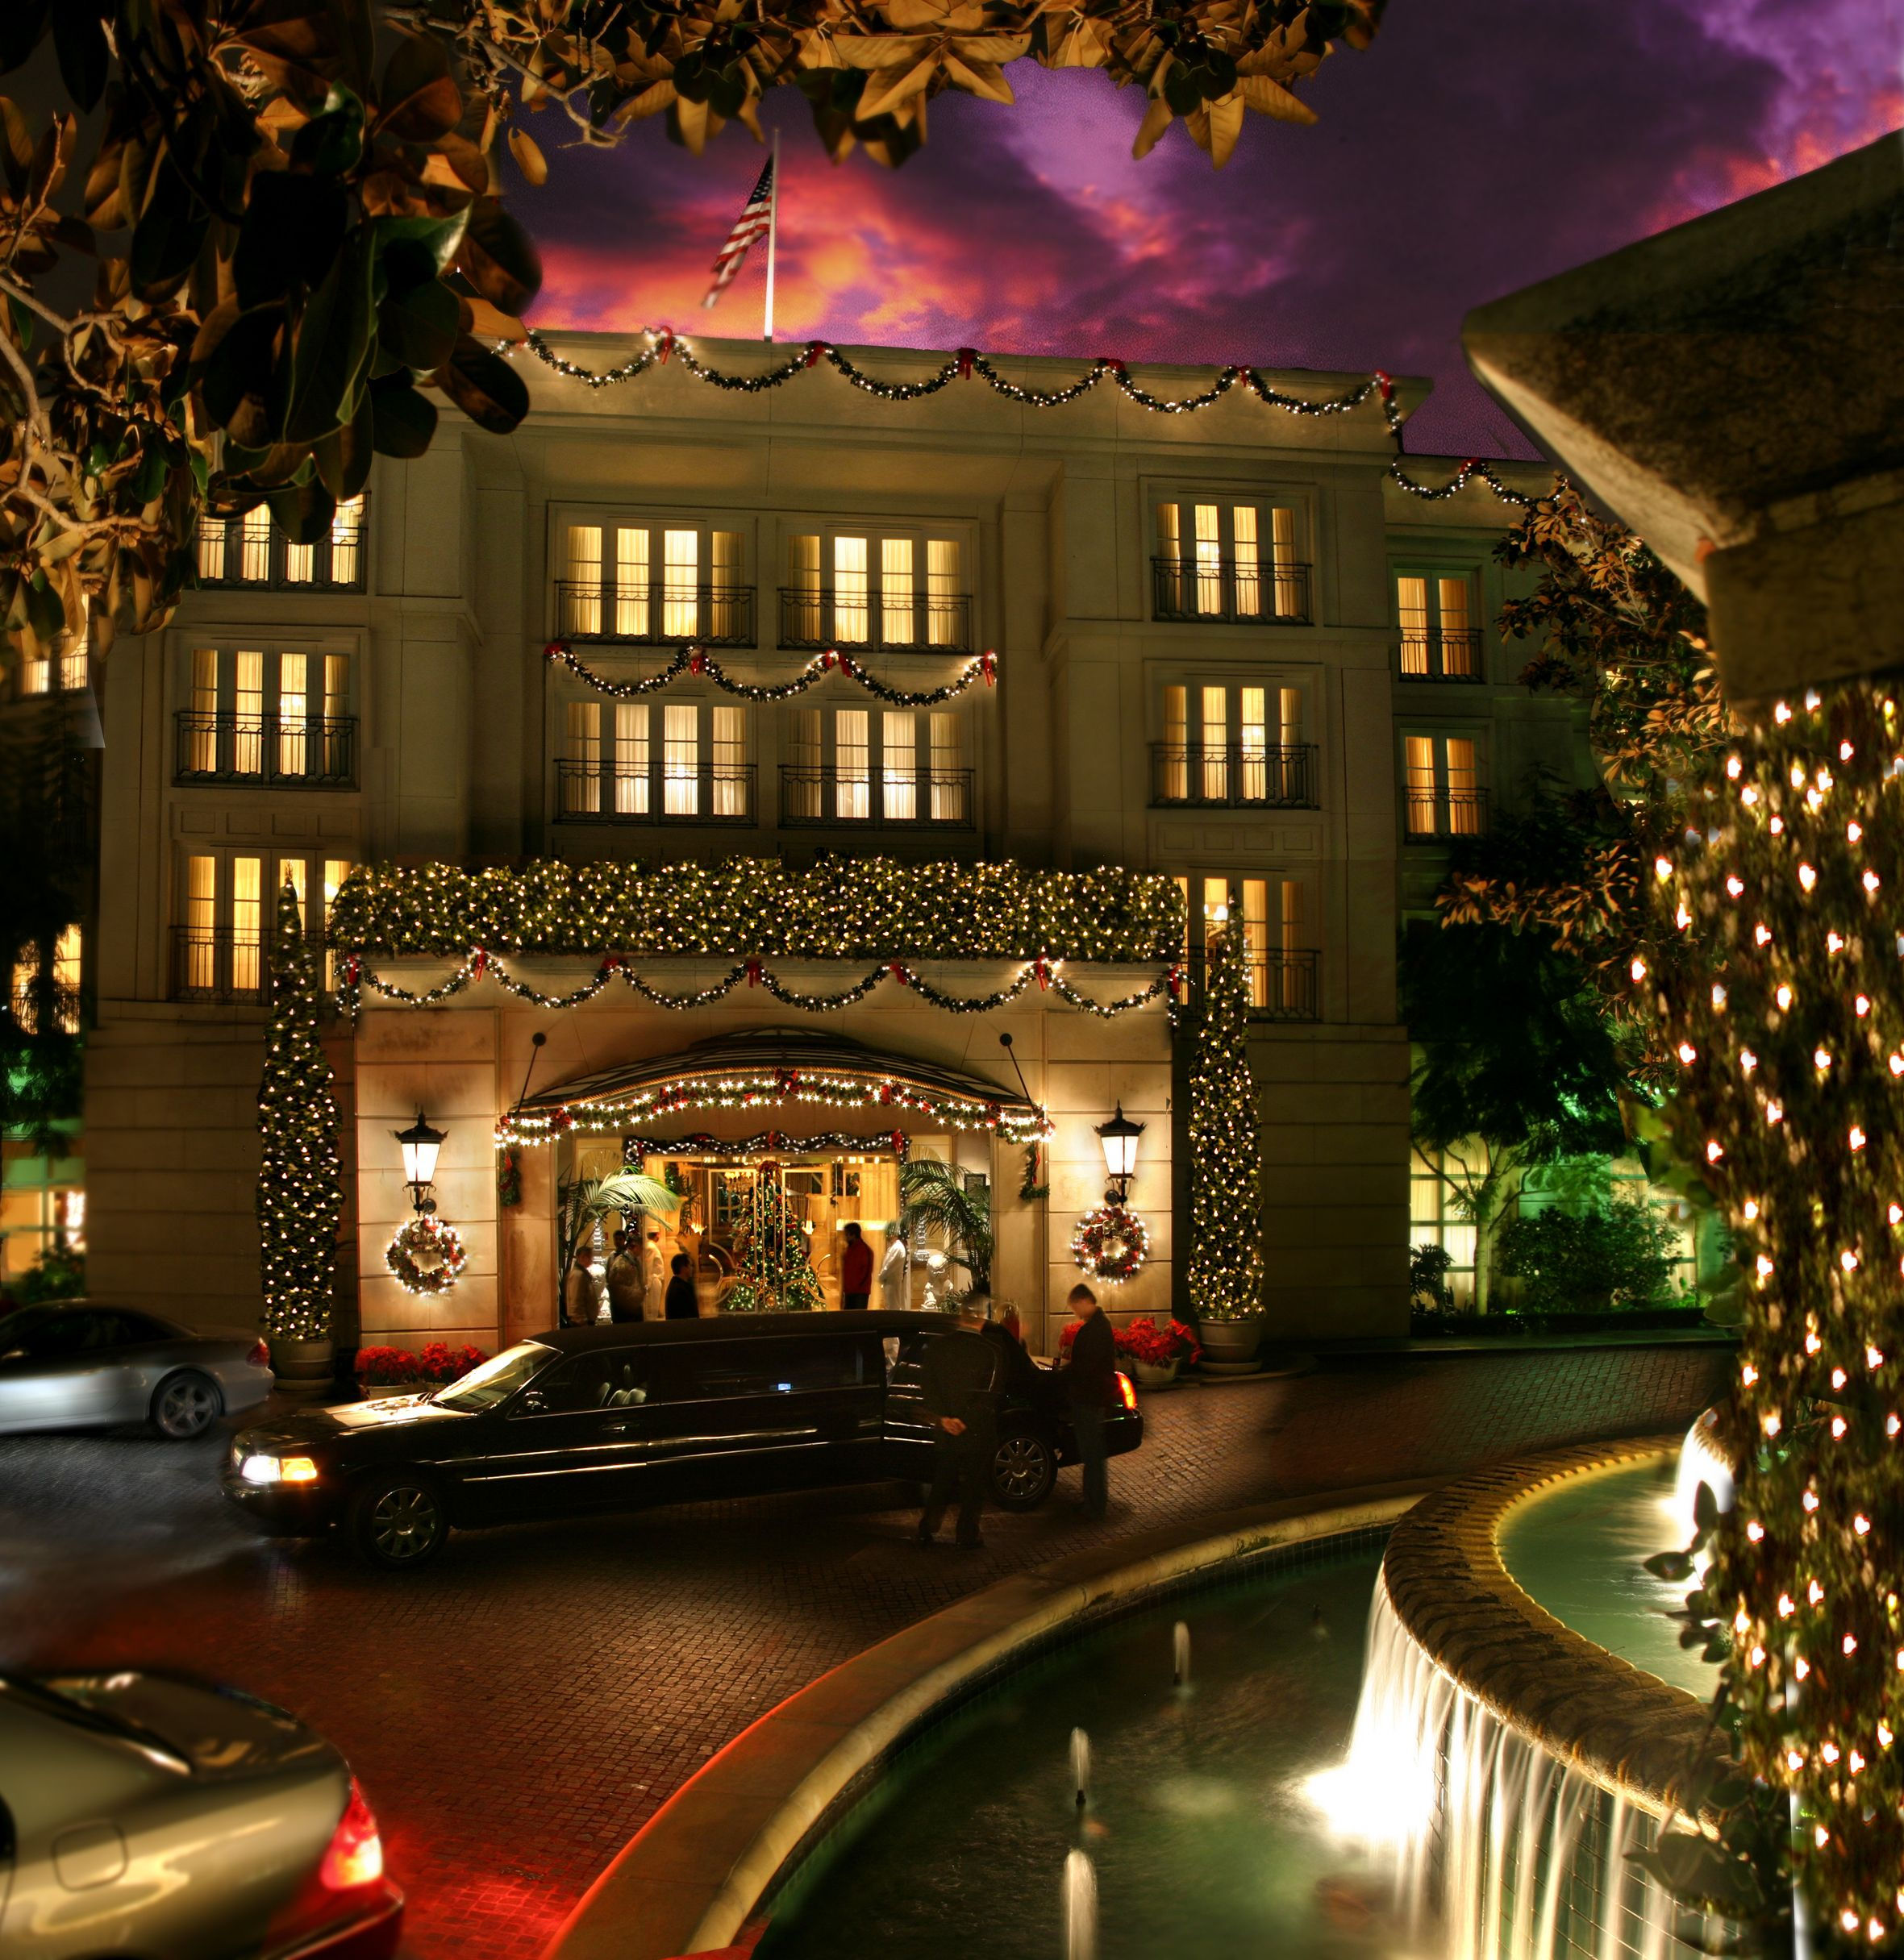 Rejoice this holiday season with an array of festive offers and events at The Peninsula Beverly Hills.